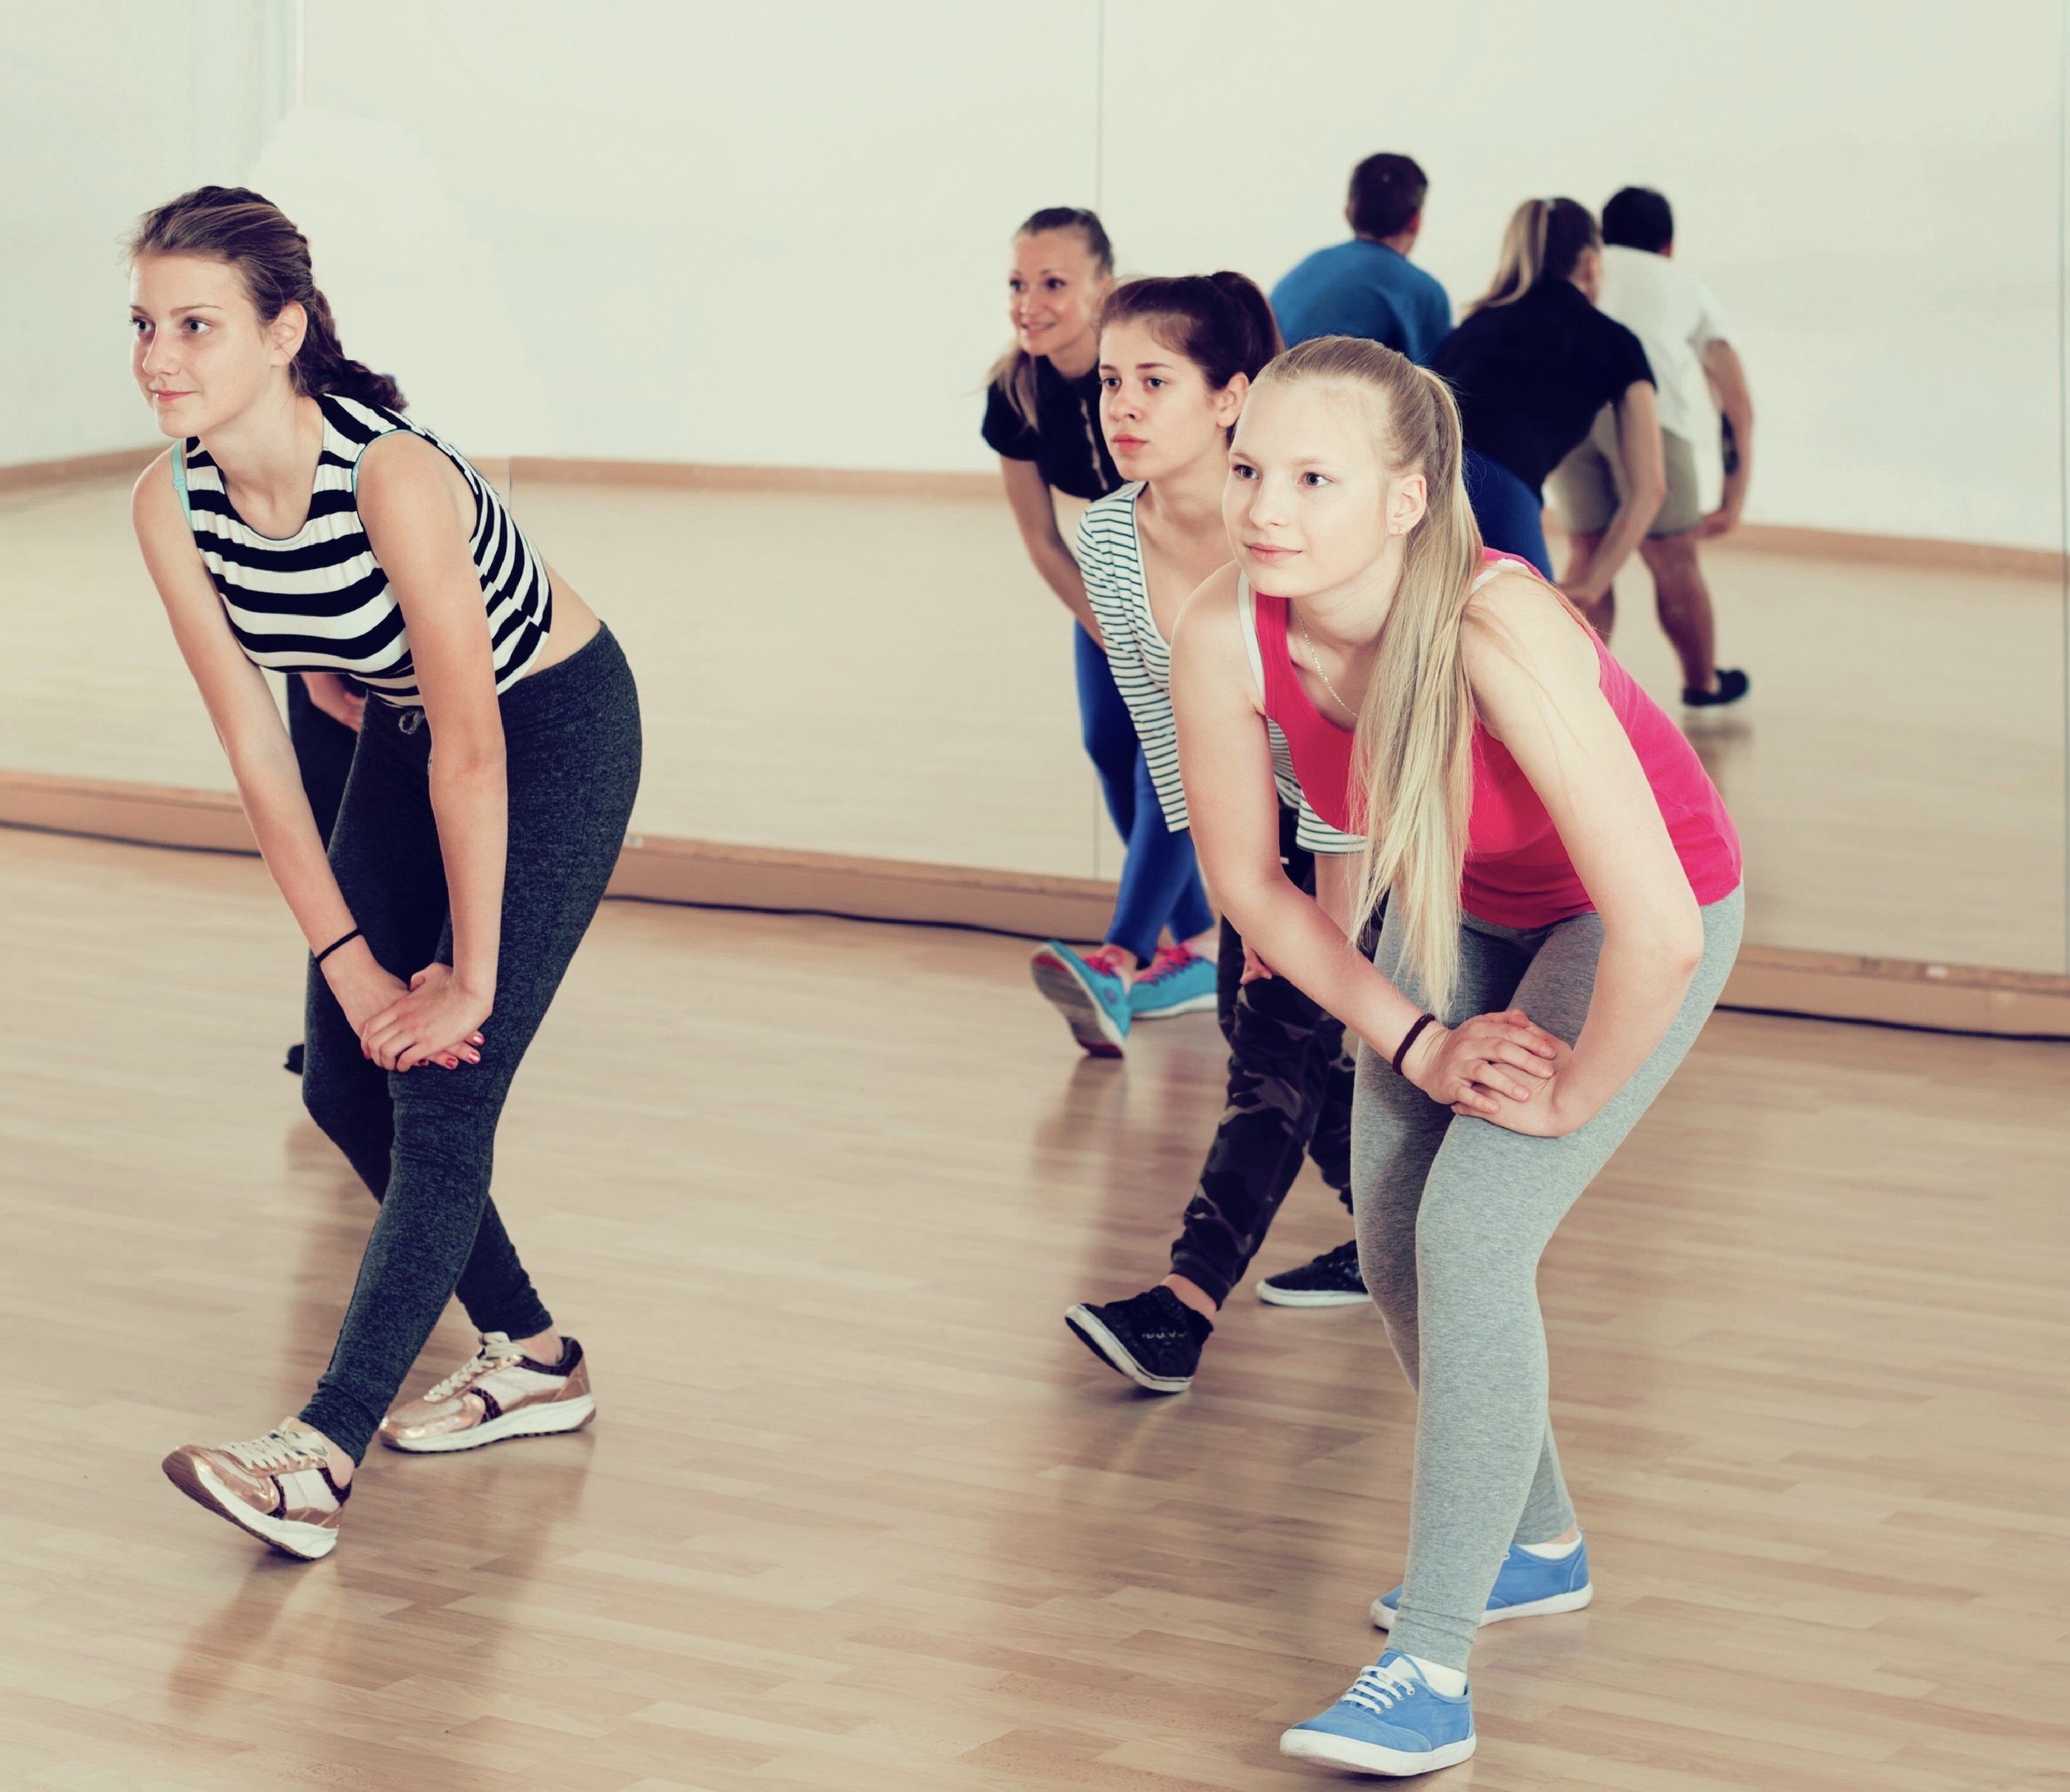 COREconfidence - OUR TEEN PROGRAM IS HERE!Bringing beginner level classes to teens 11-16Classes start 09/16